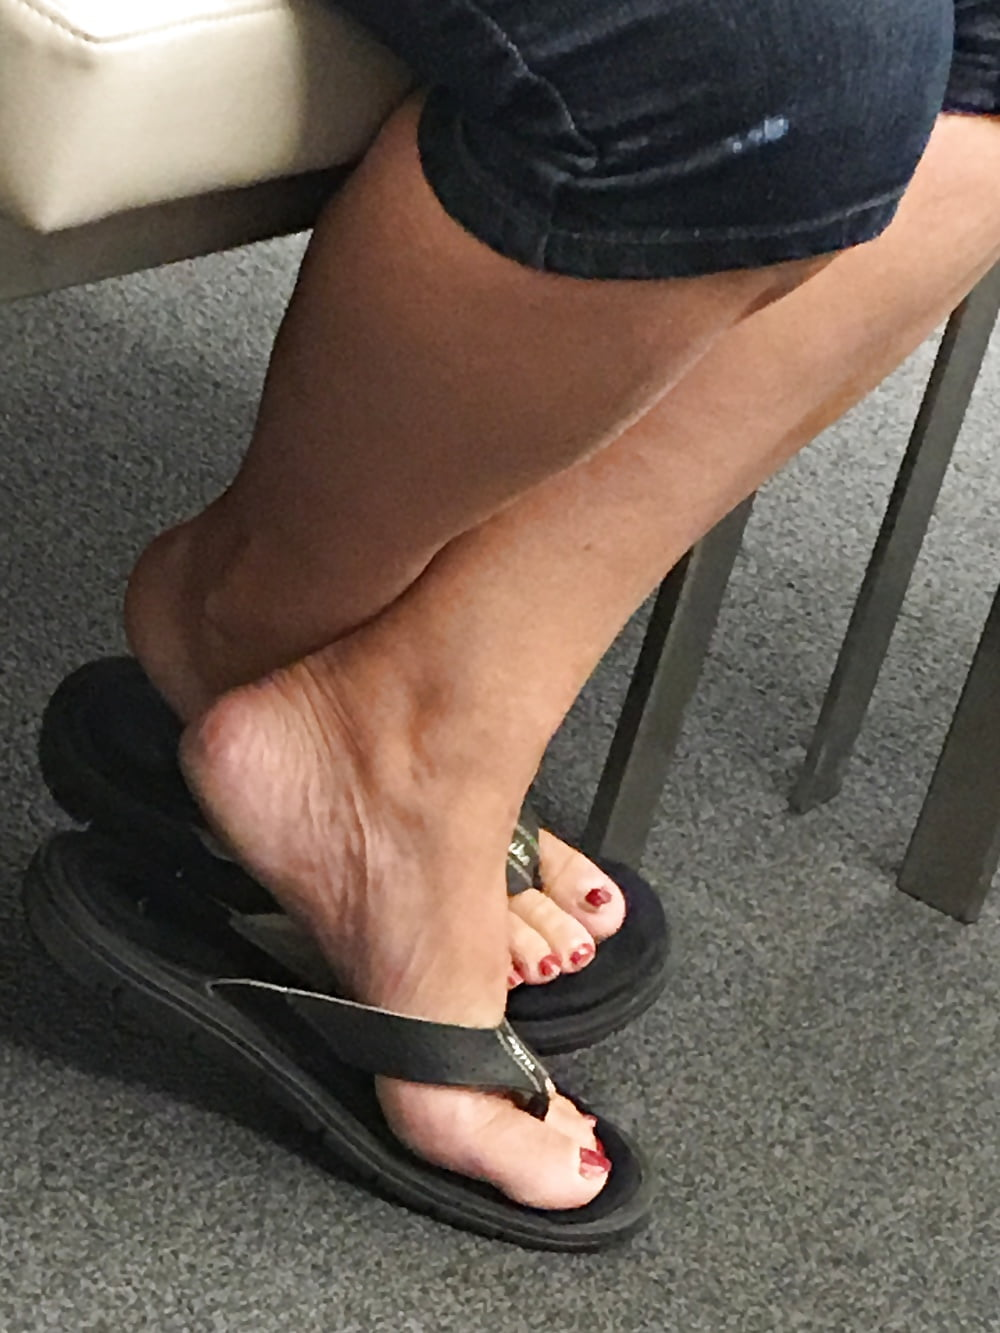 See And Save As Milf Feet Candid Porn Pict